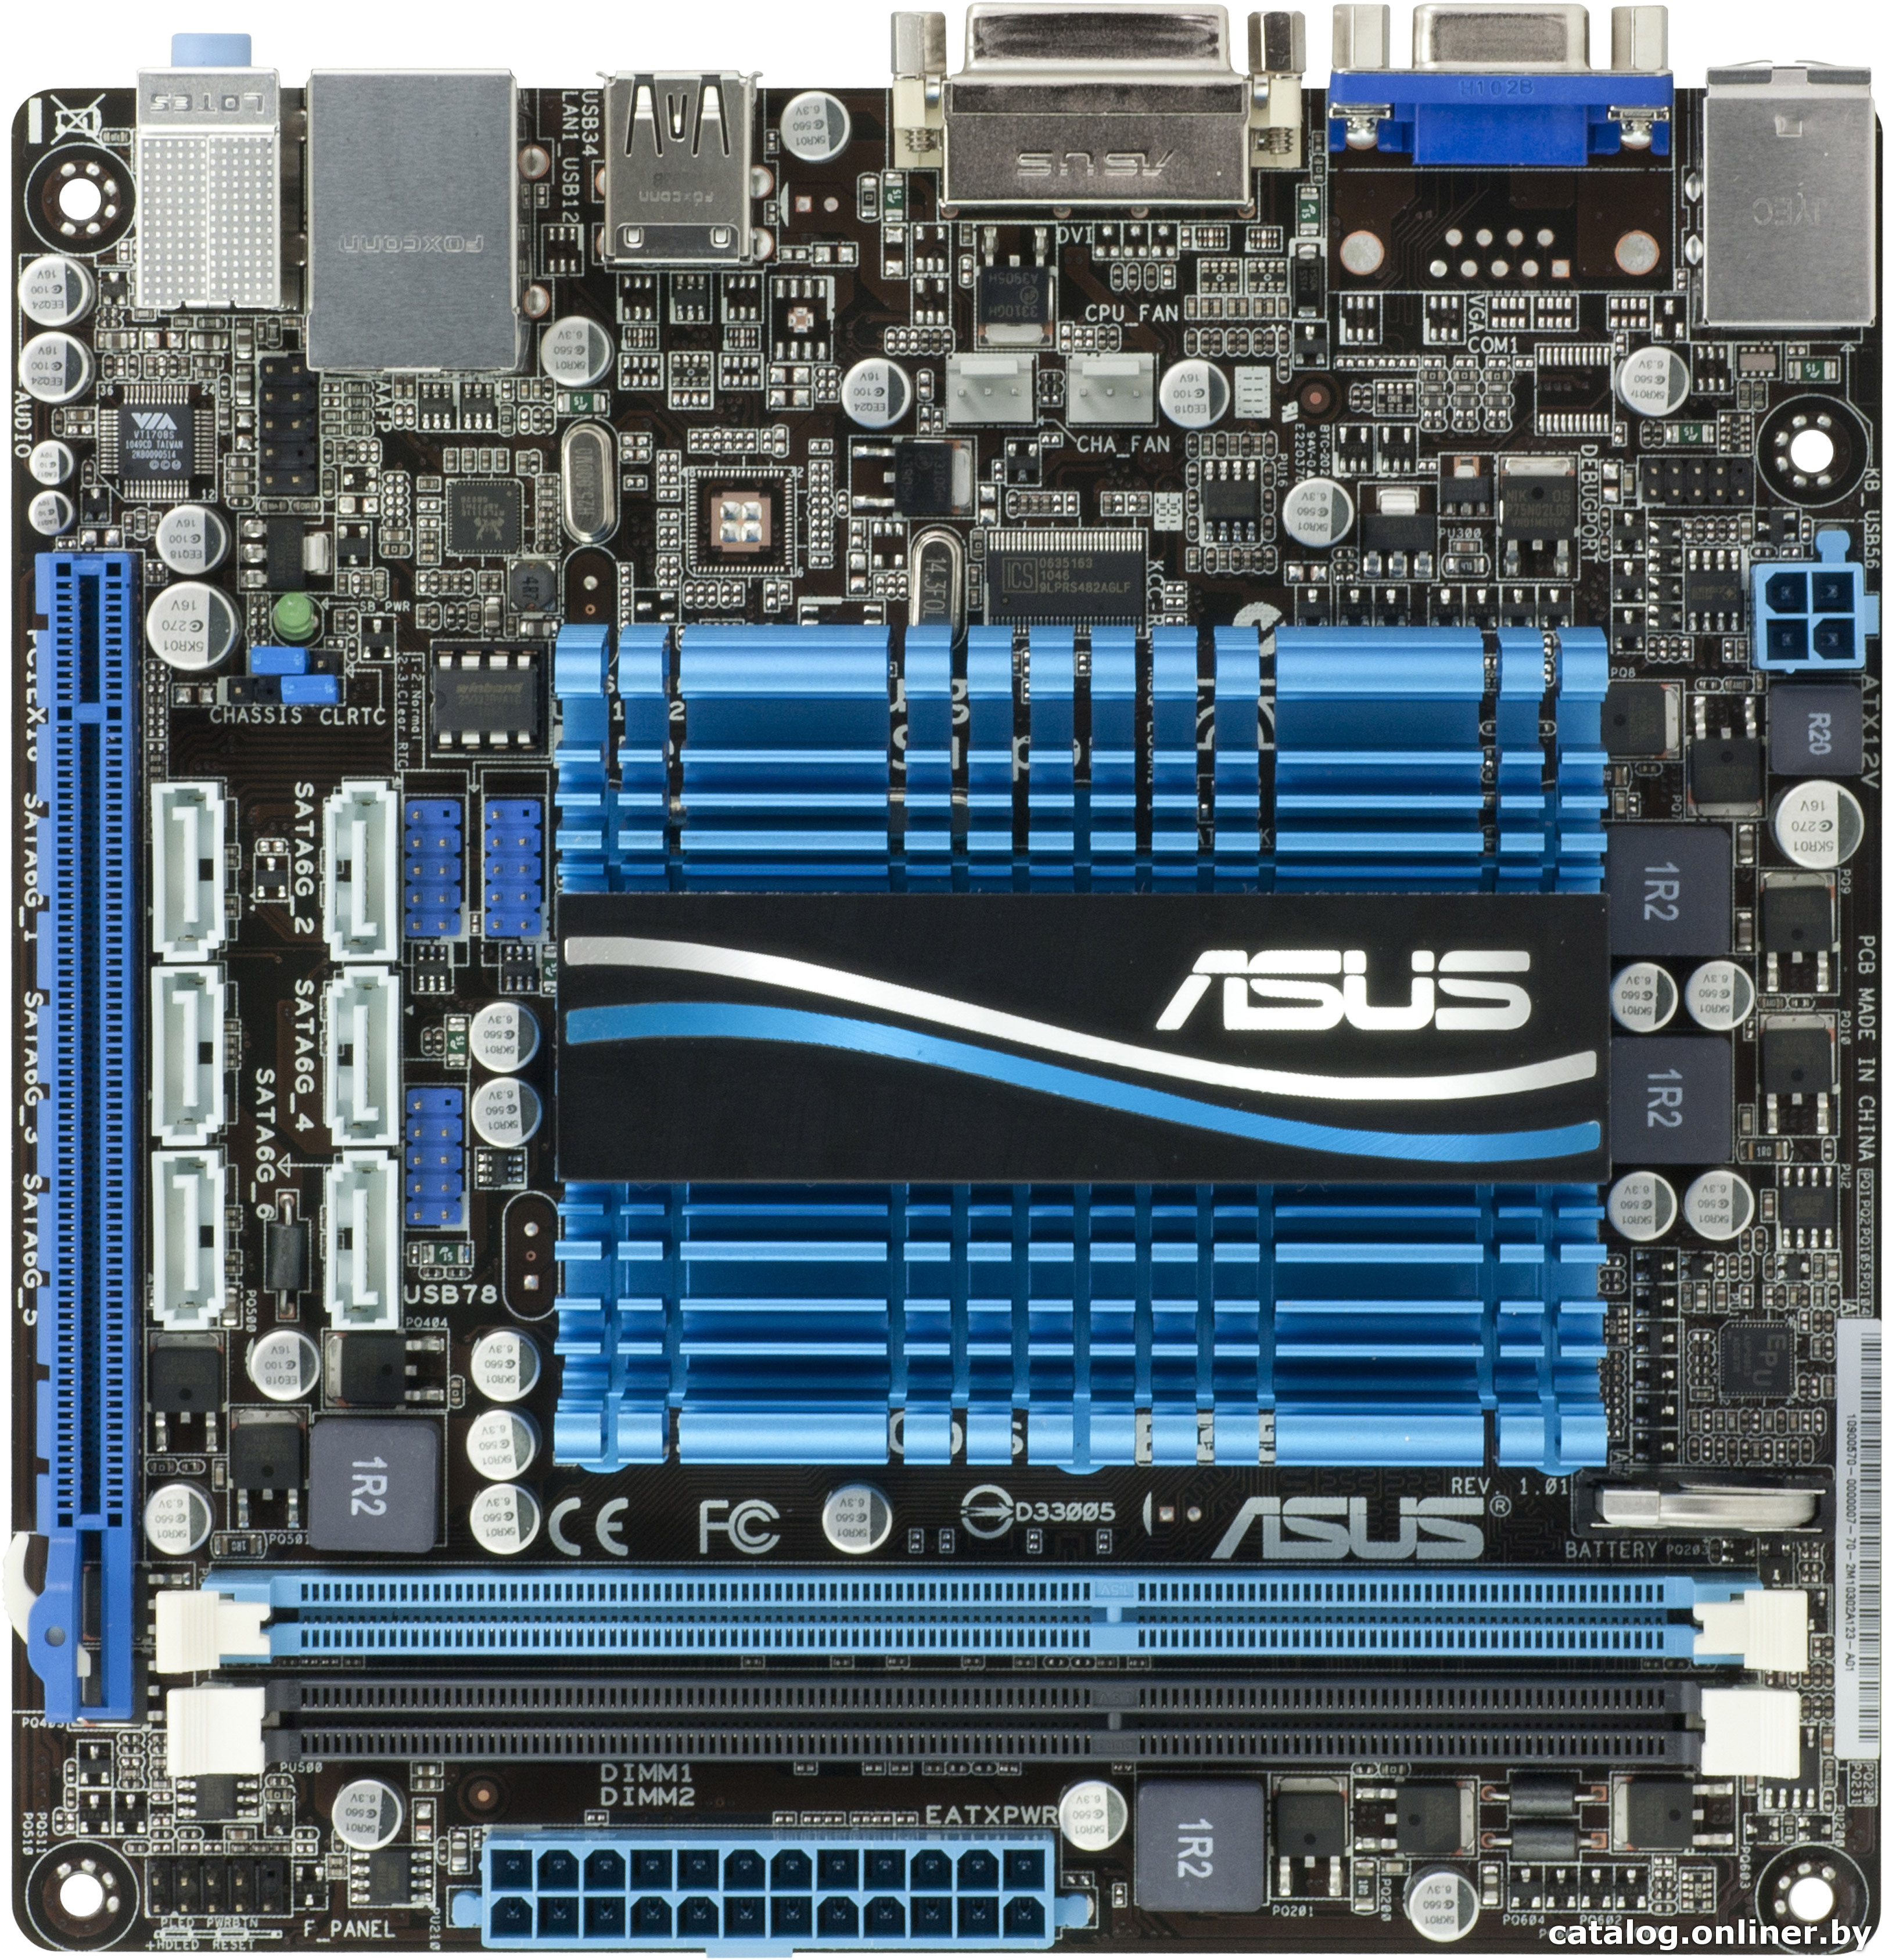 NEW DRIVER: ASUS C60M1-I MOTHERBOARD